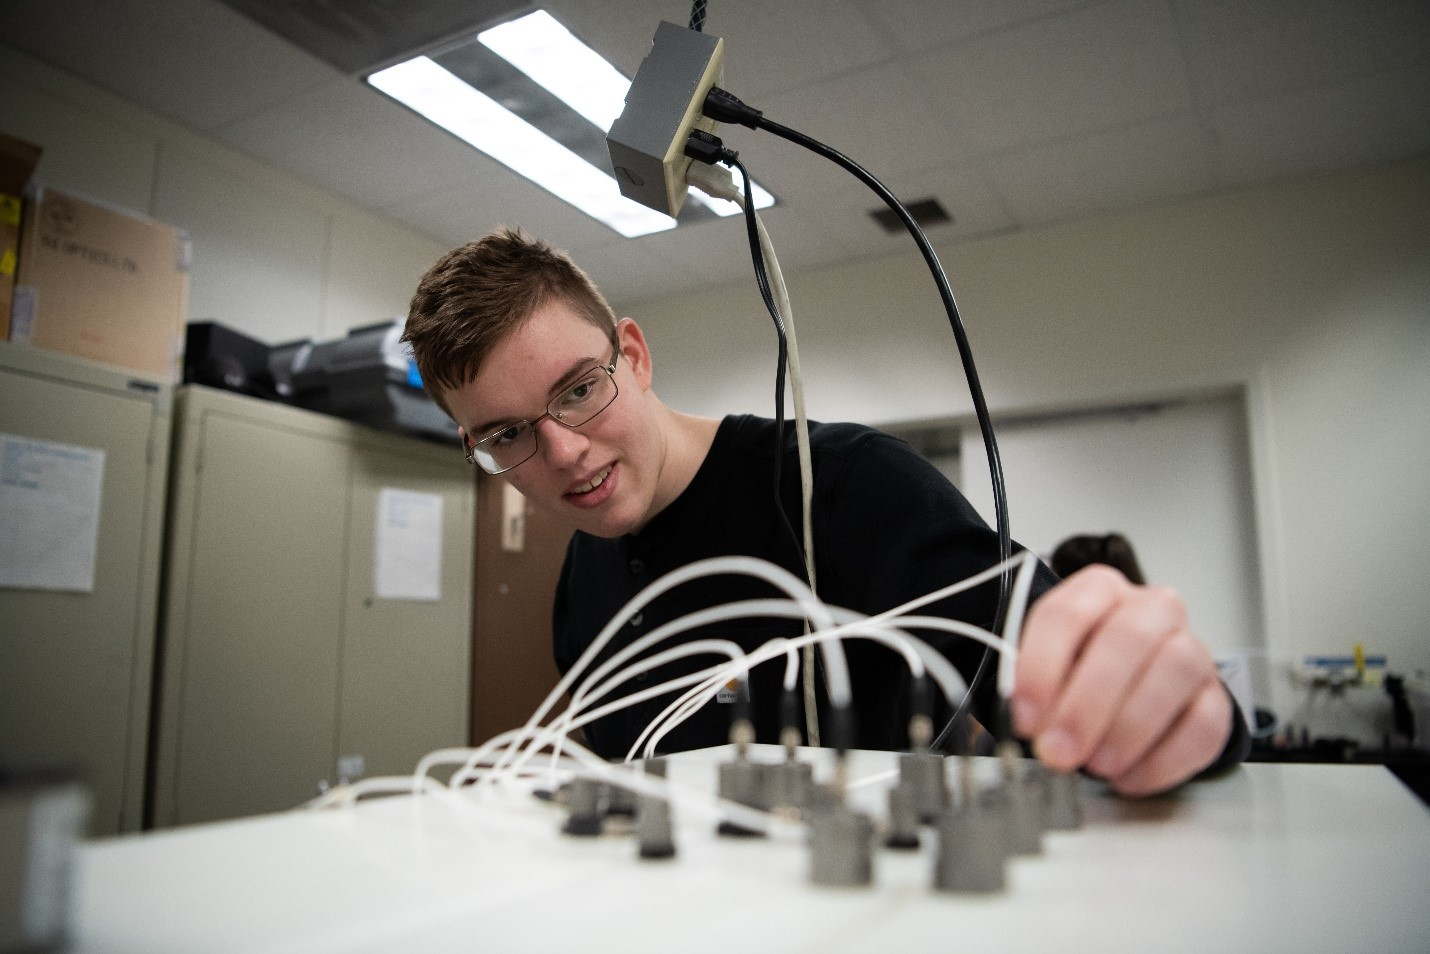 Andrew O'Brien adjusts transducers in a laboratory